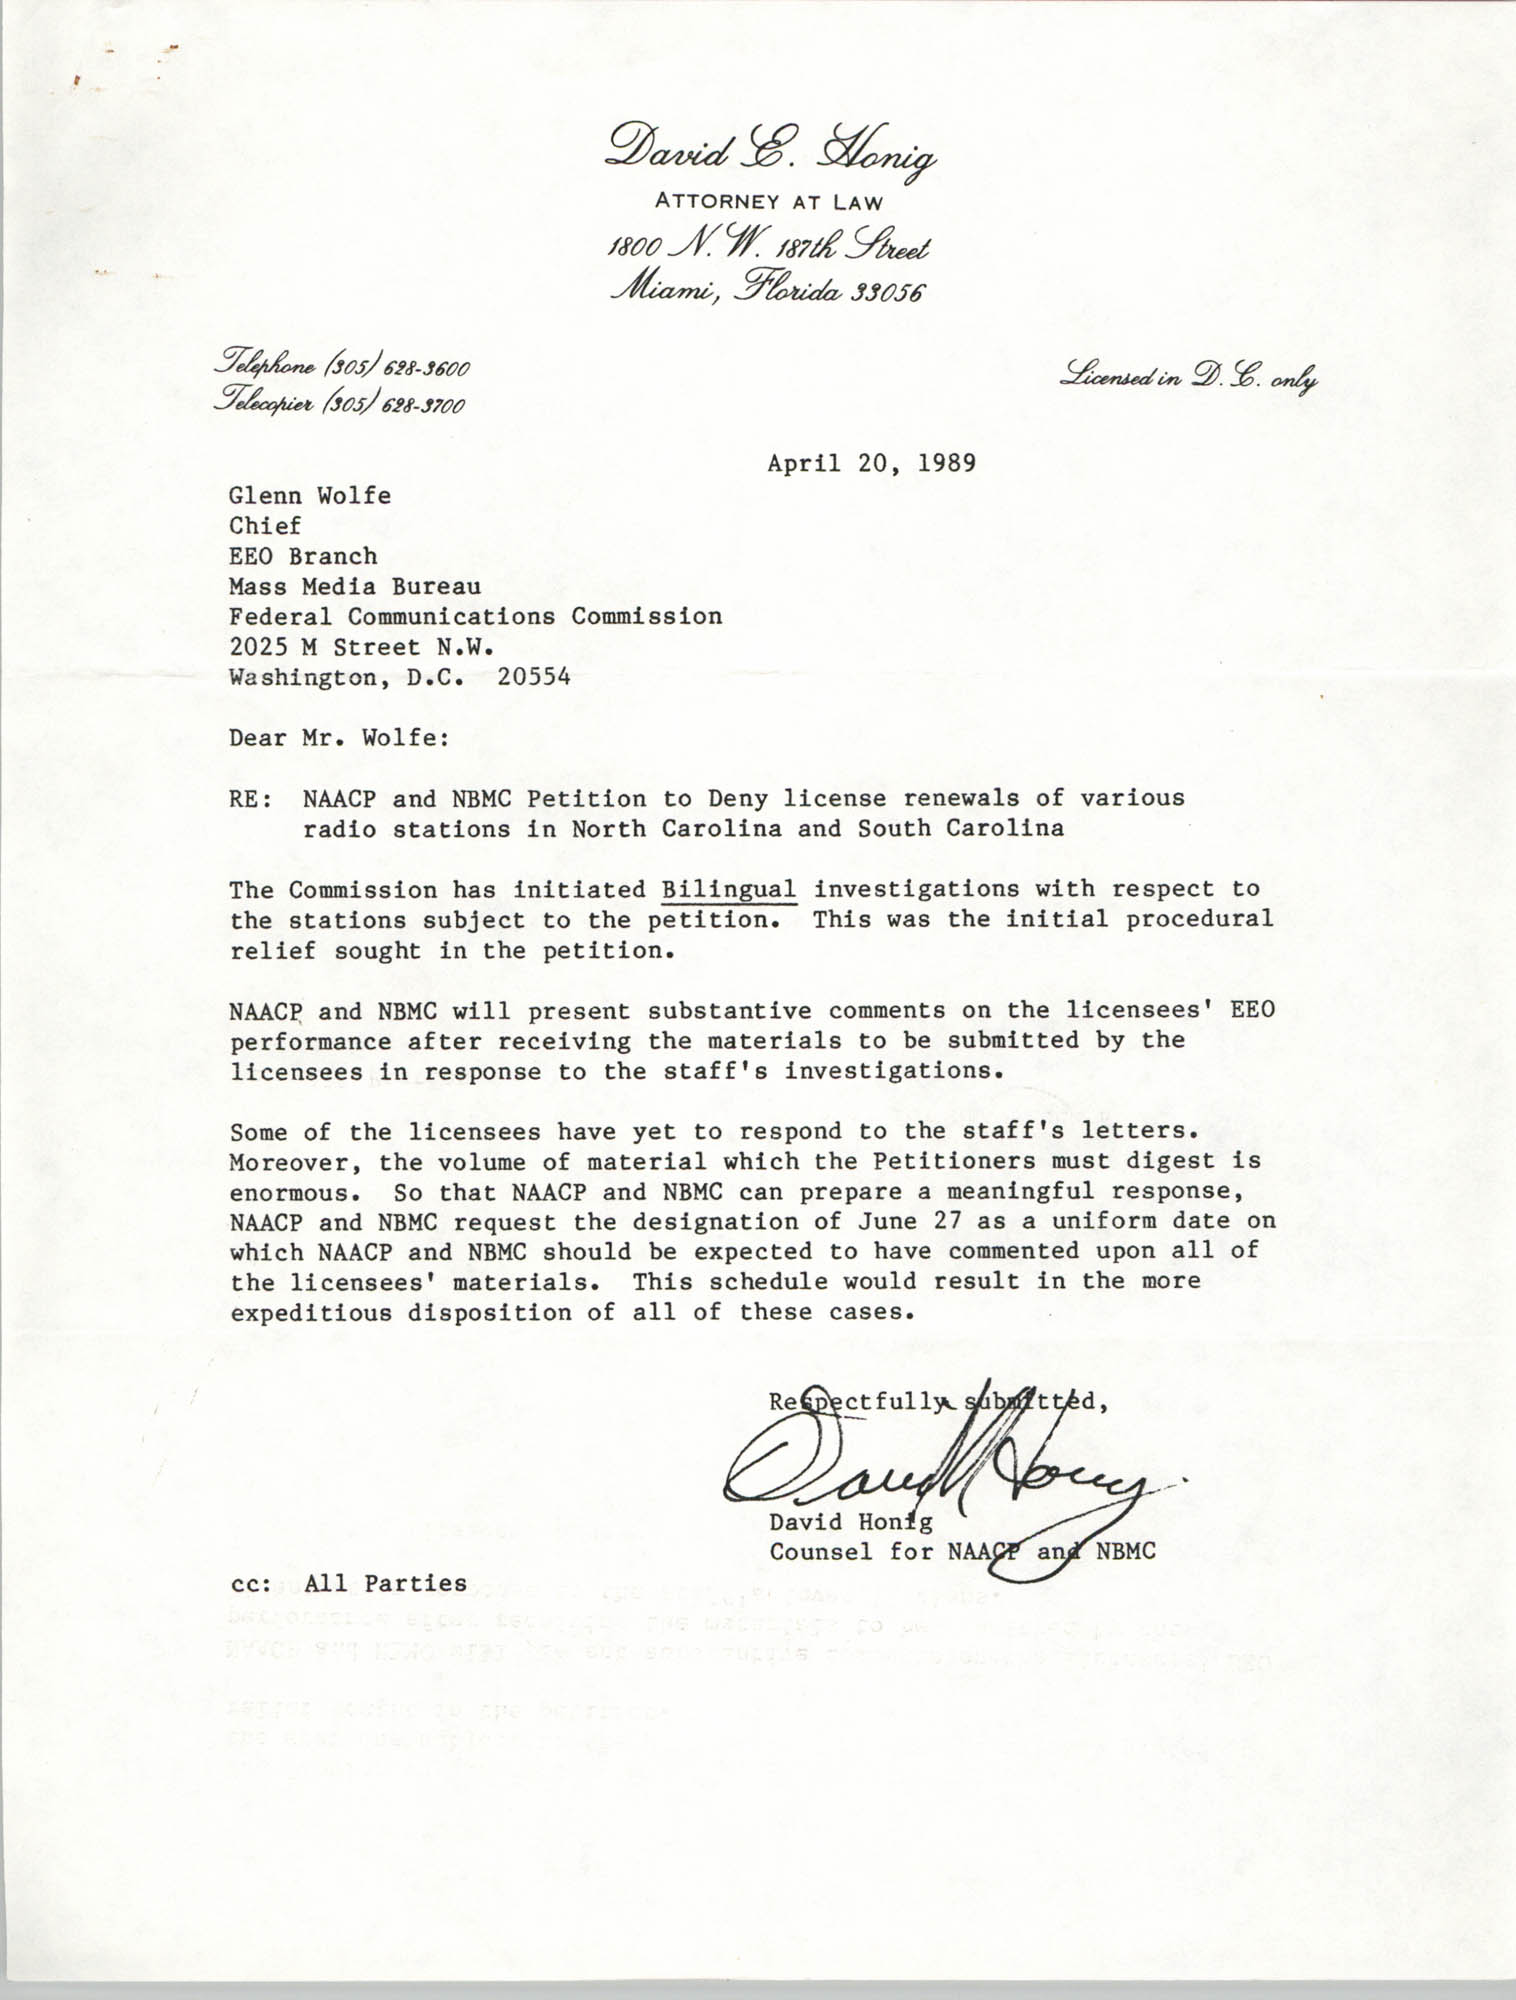 Letter from David Honig to Glenn Wolfe, April 20, 1989